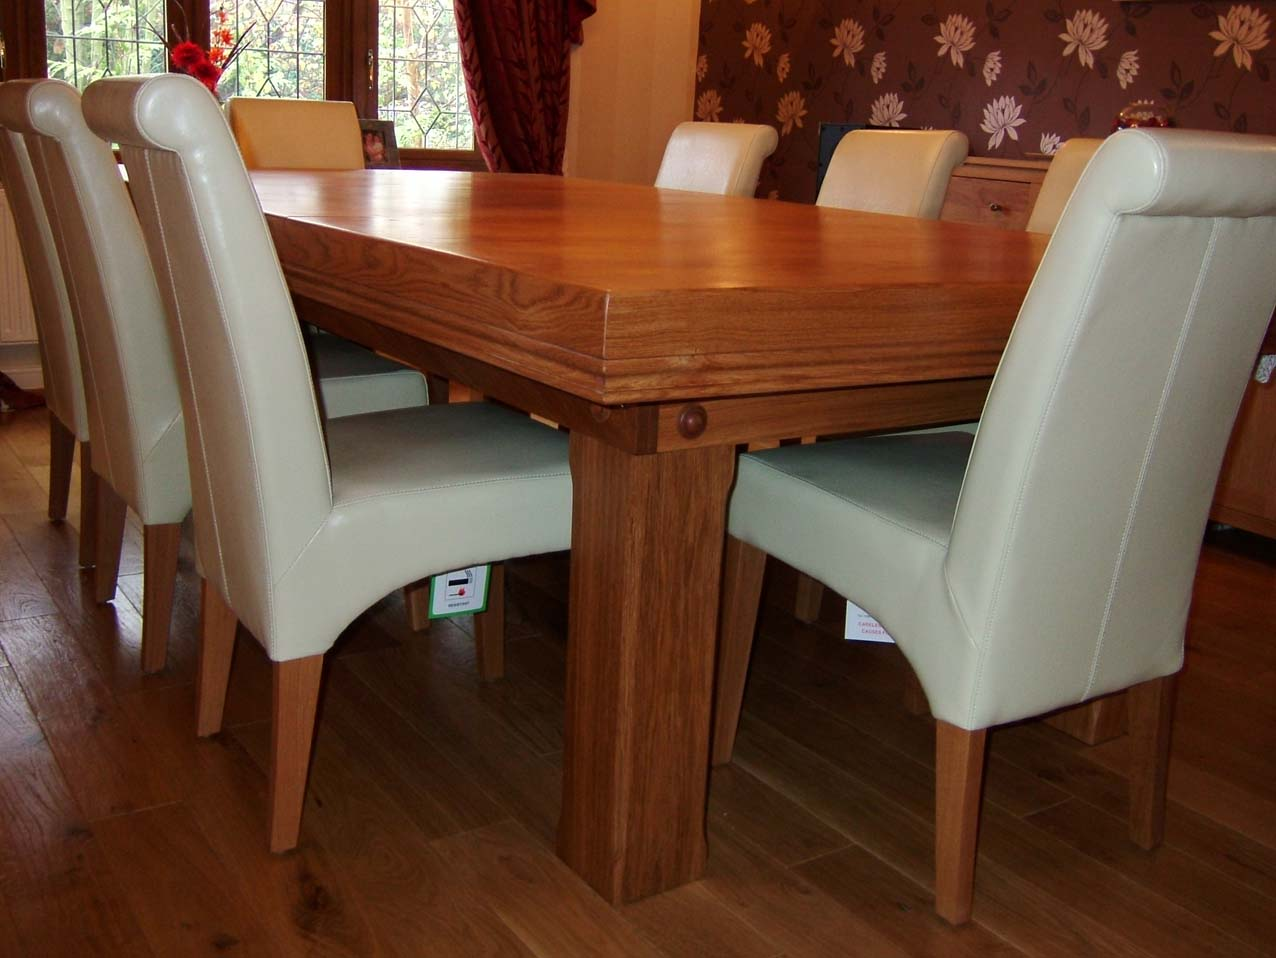 7ft snooker dining table made of oak with blue cloth cover